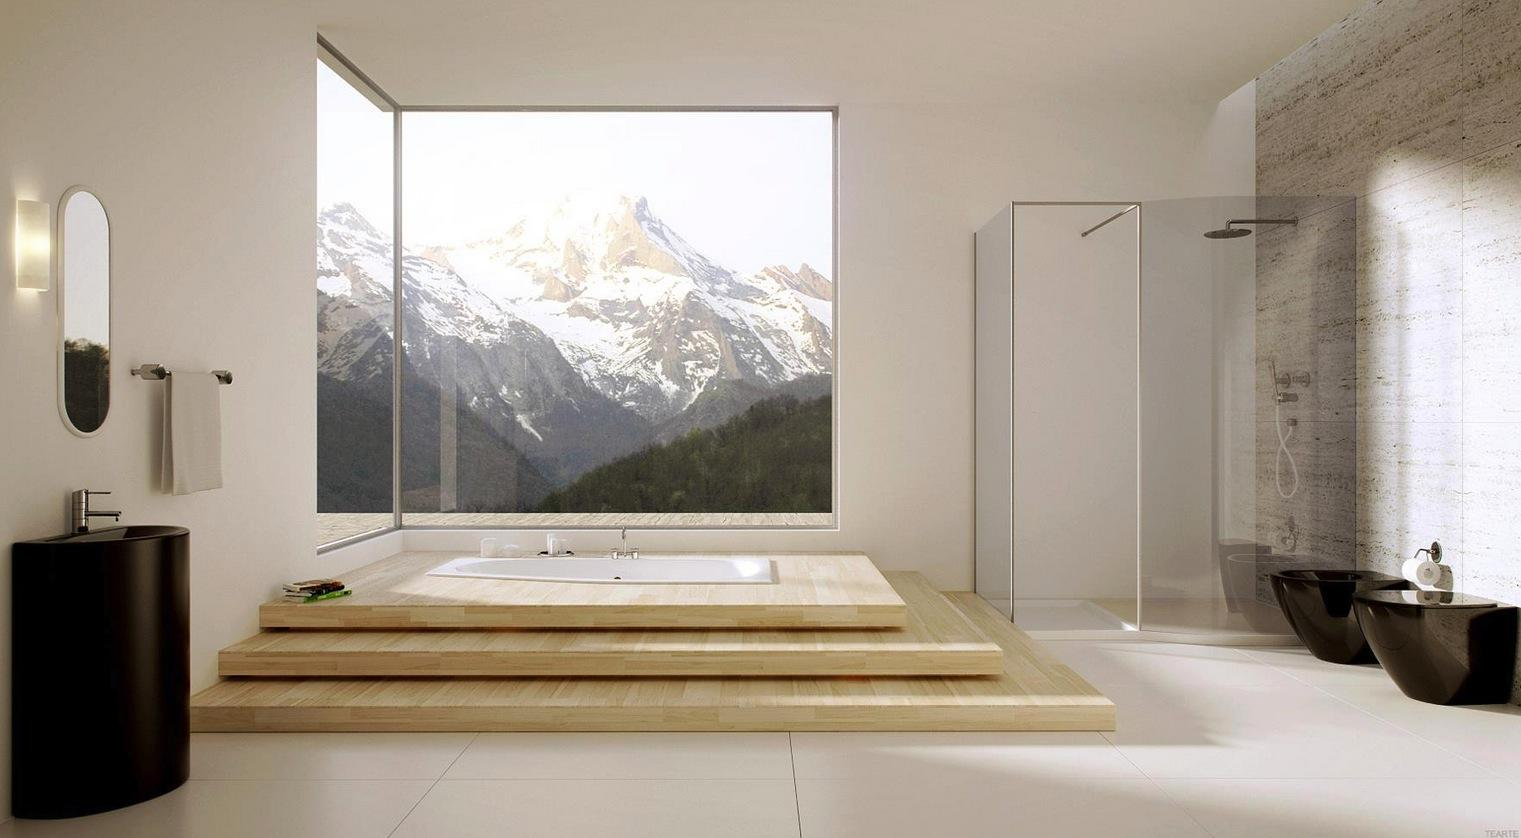 Great Bathroom Designs Amusing Of Modern Bathroom with Large Windows Pictures